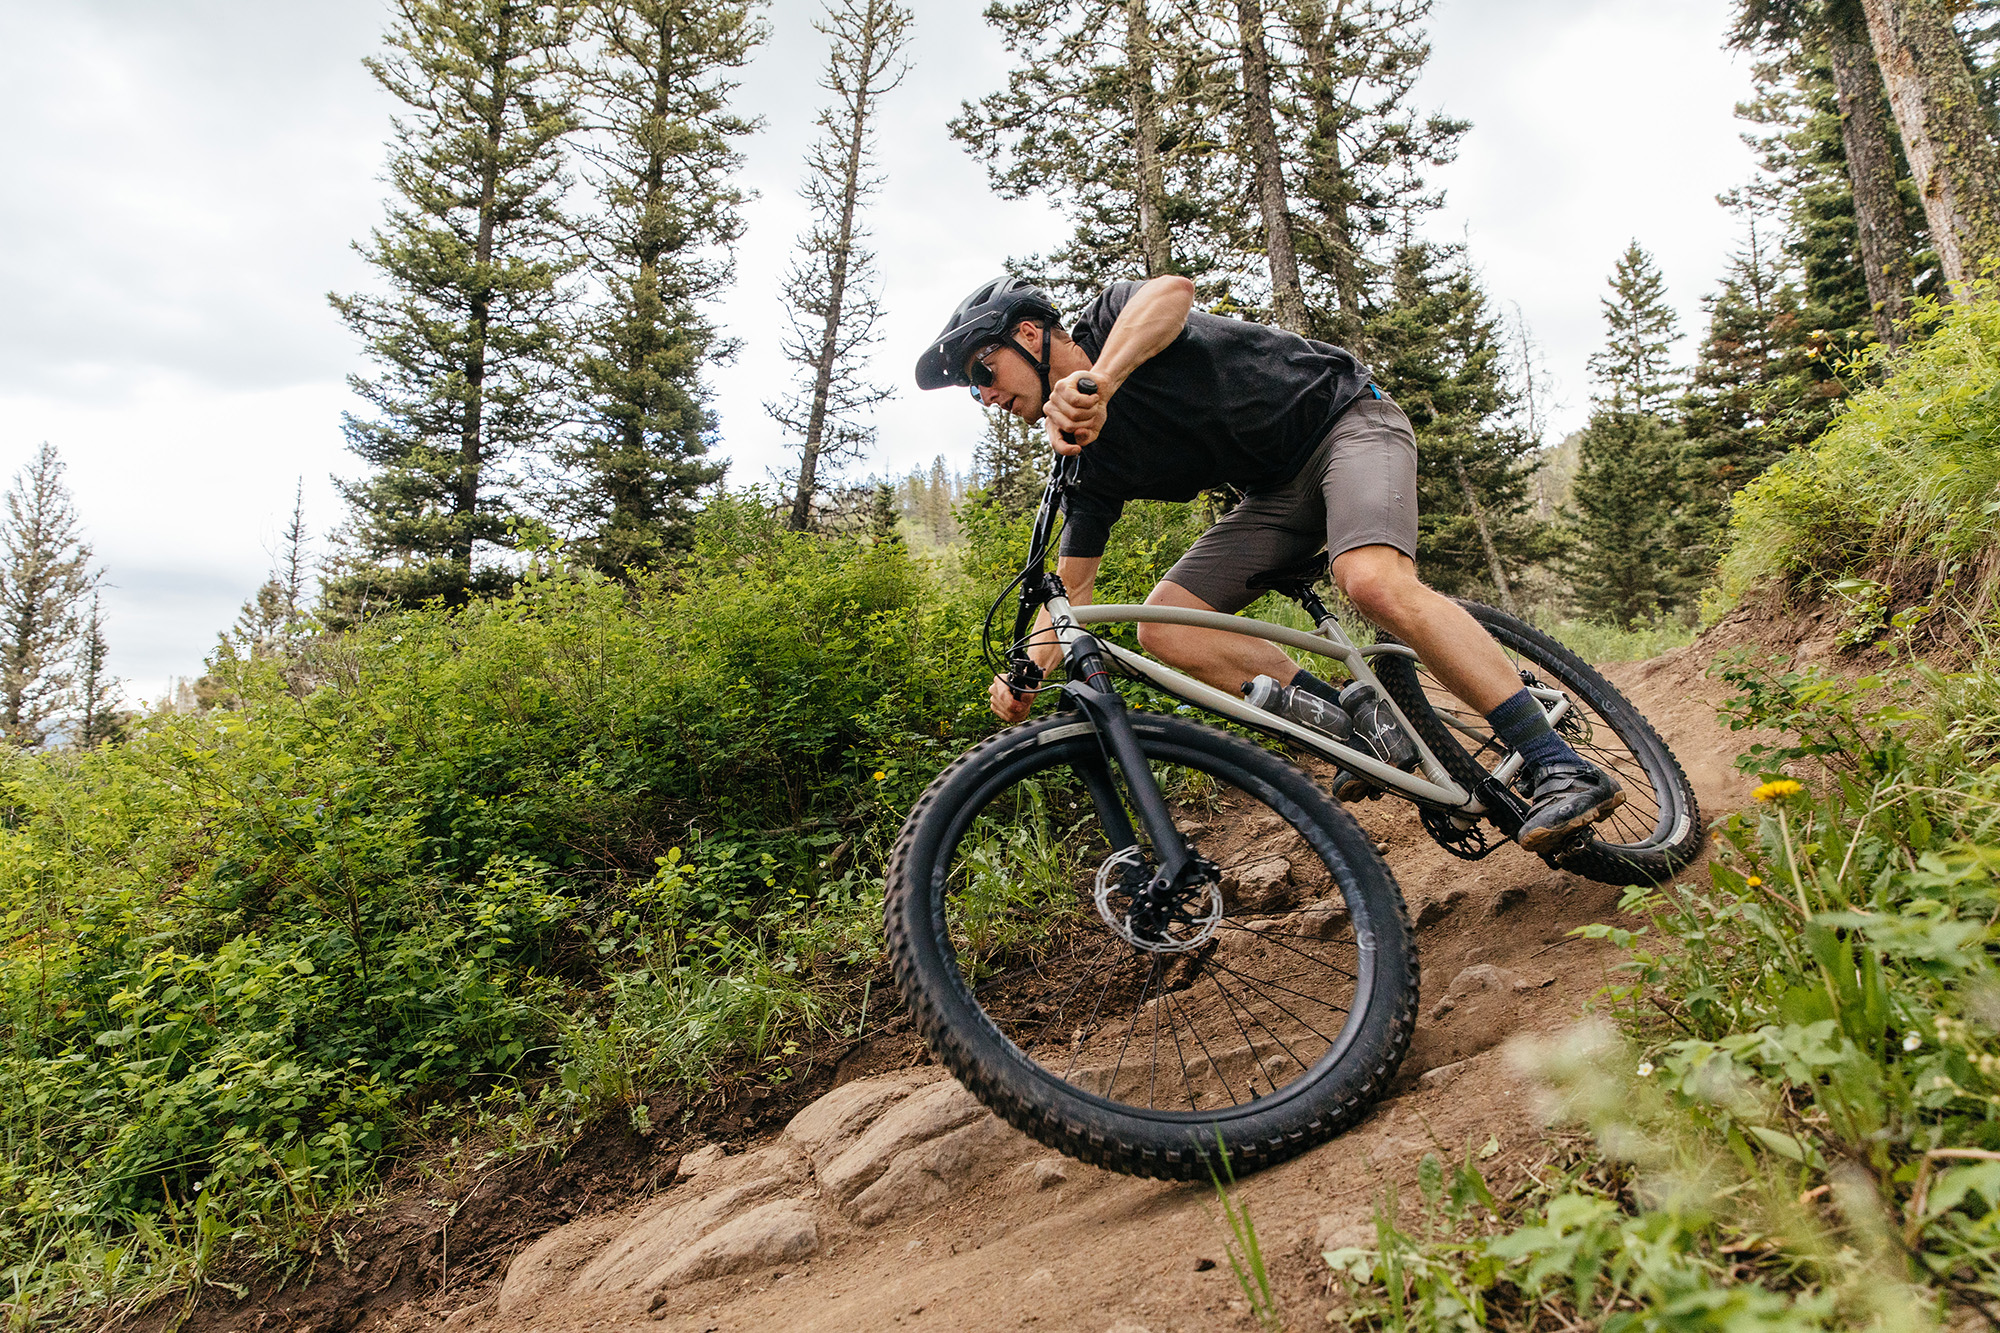 MTB News Mix: Sklar Bikes Finds Sweet Spot, Fun Apparel Prints by Zoic, an Affordable Alloy XC Bike - Singletracks Mountain Bike News